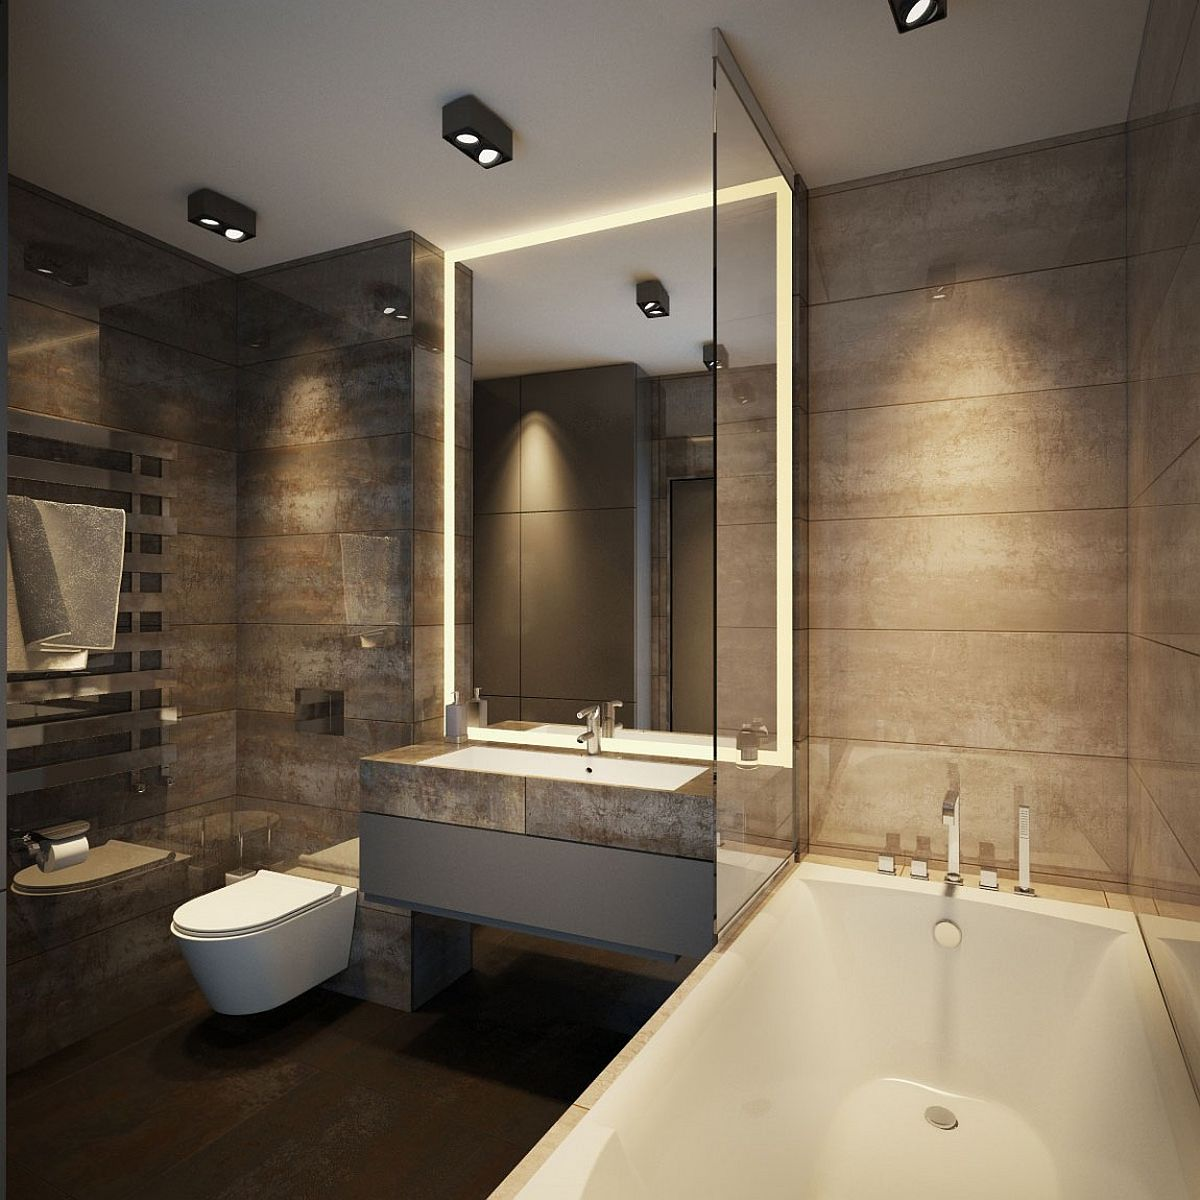 Apartment ernst in kiev inspired by posh hotel ambiance - Bathroom designs for home ...